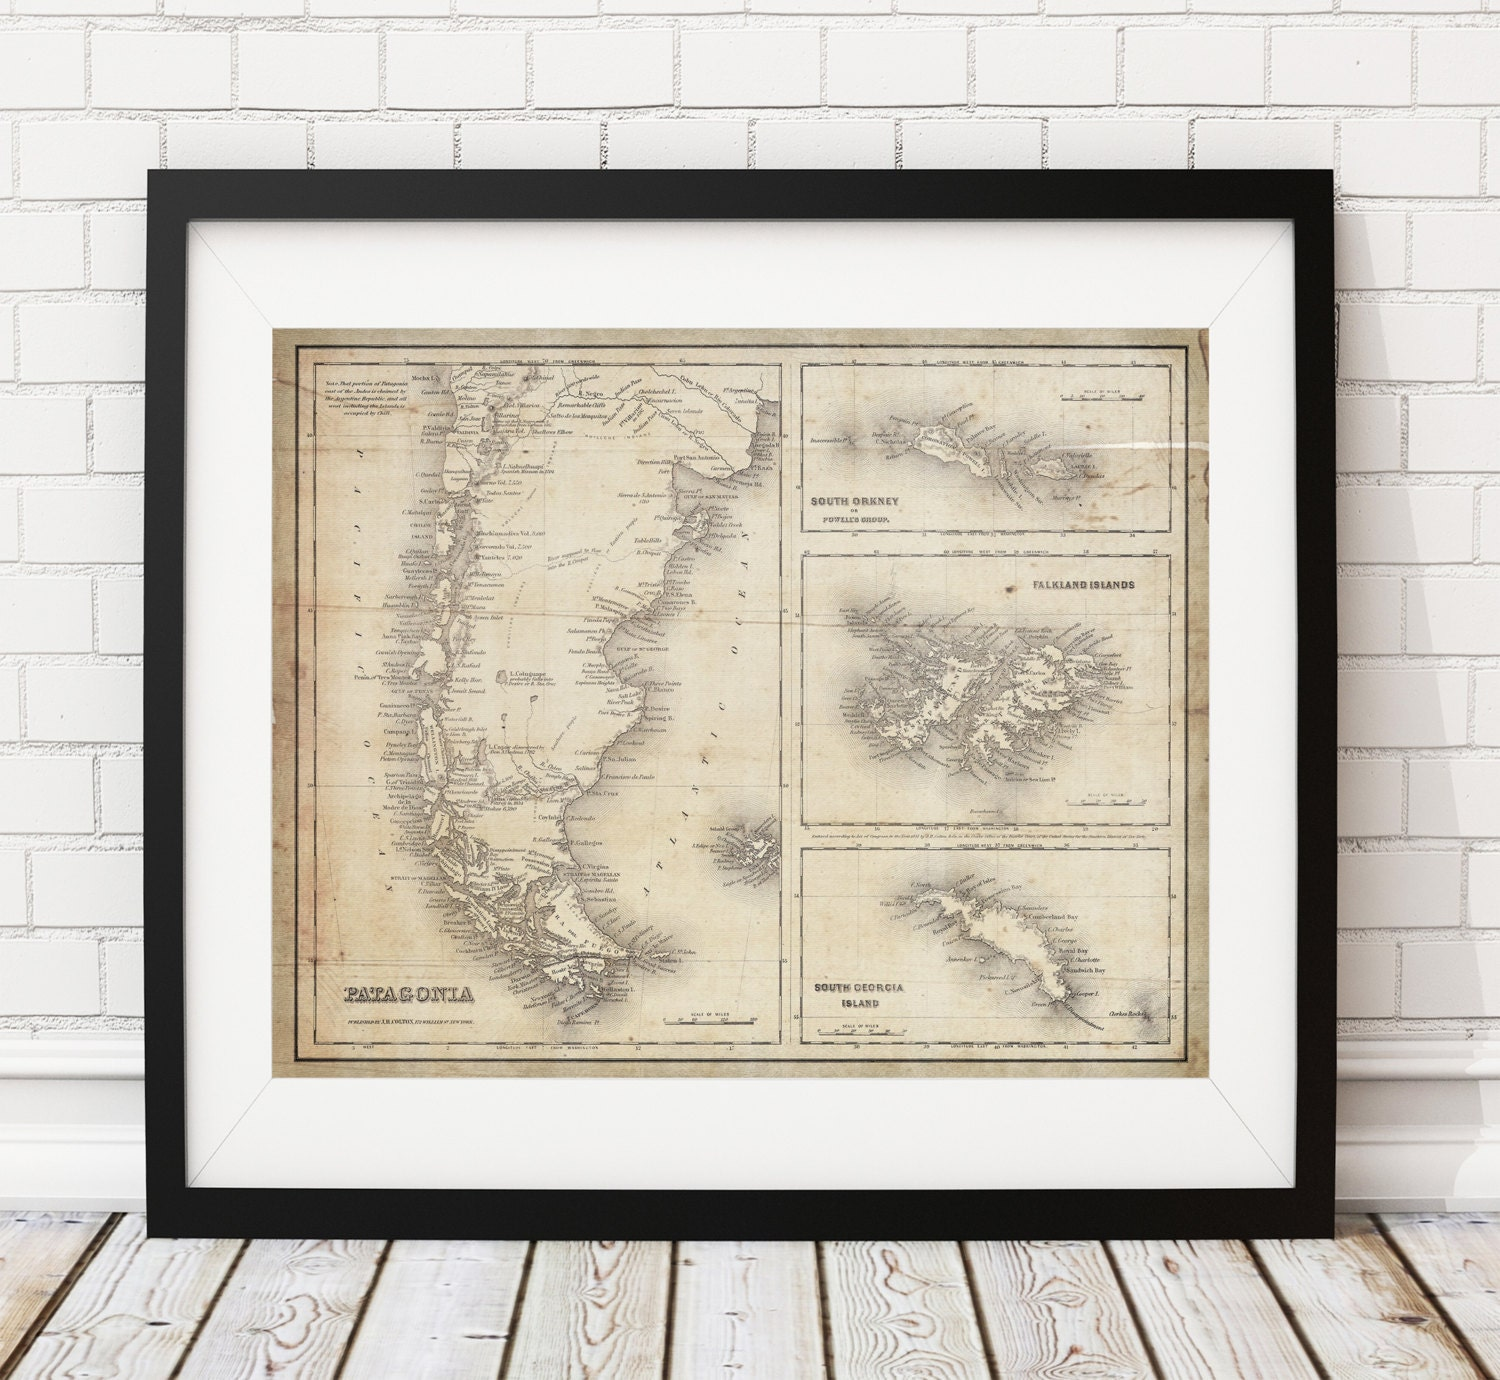 Patagonia Map Argentina Map Chile Map Vintage Map Art Antique - Argentina map vintage